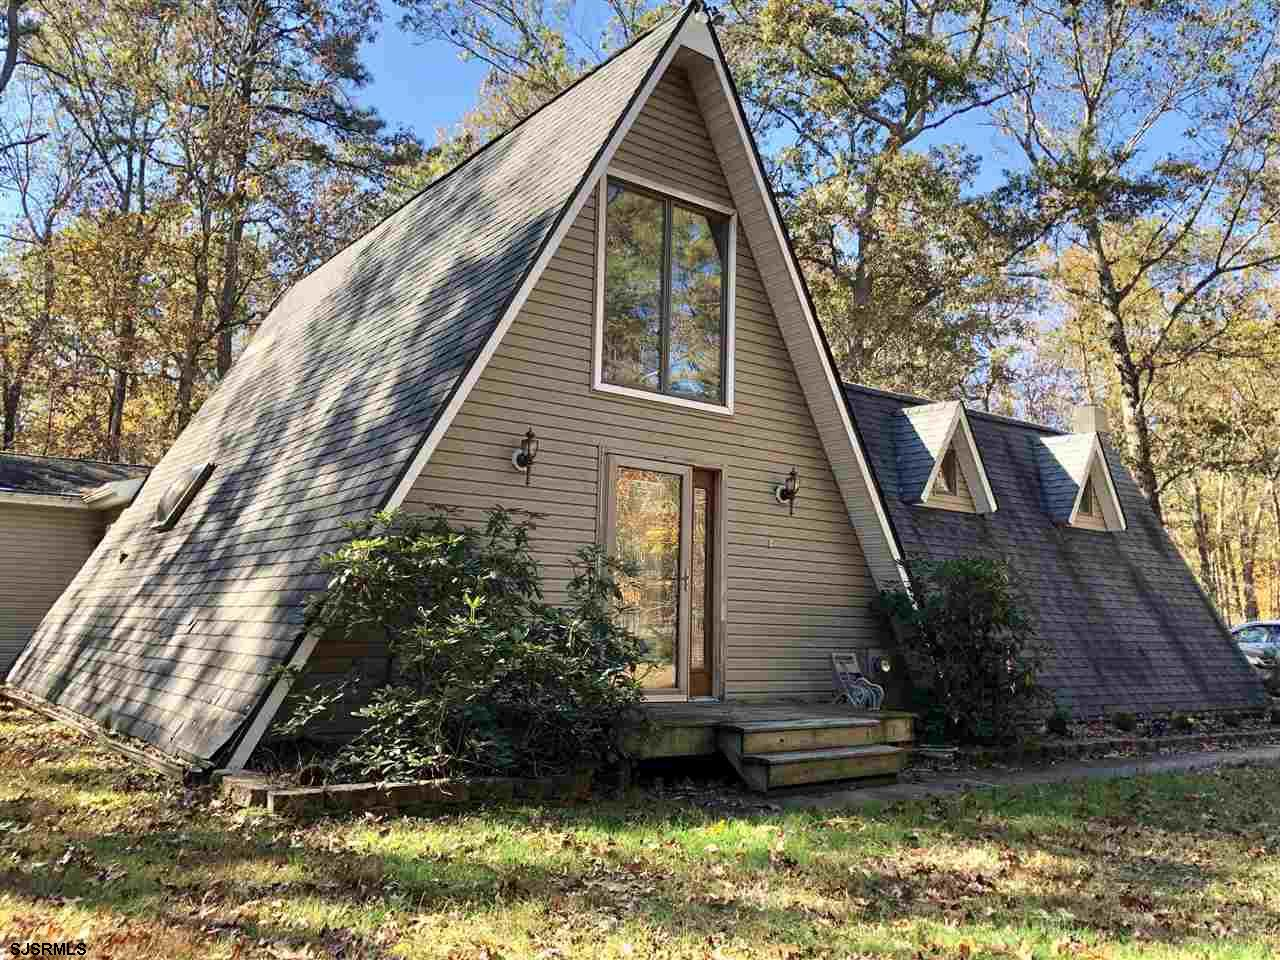 THIS HOME IS ANYTHING BUT TRADITIONAL! Super unique A-Frame multi-level home with so much character, space and just a bit out of the ordinary. If you've grown tired of cookie cutter floor plans and want something different then you need to check this one out!  The first floor offers 2 bedrooms including the newer master suite plus a guest room and hall bath.  The laundry center is also housed in this area.  The galley style kitchen is so rustic and cute and is adjacent to the dining room.  From the living room, there are two small stairwells - one that takes you to the original master suite and a second one that leads you to an upper level loft which would make a fabulous office.  The open stairwell and the roof line does allow one to view